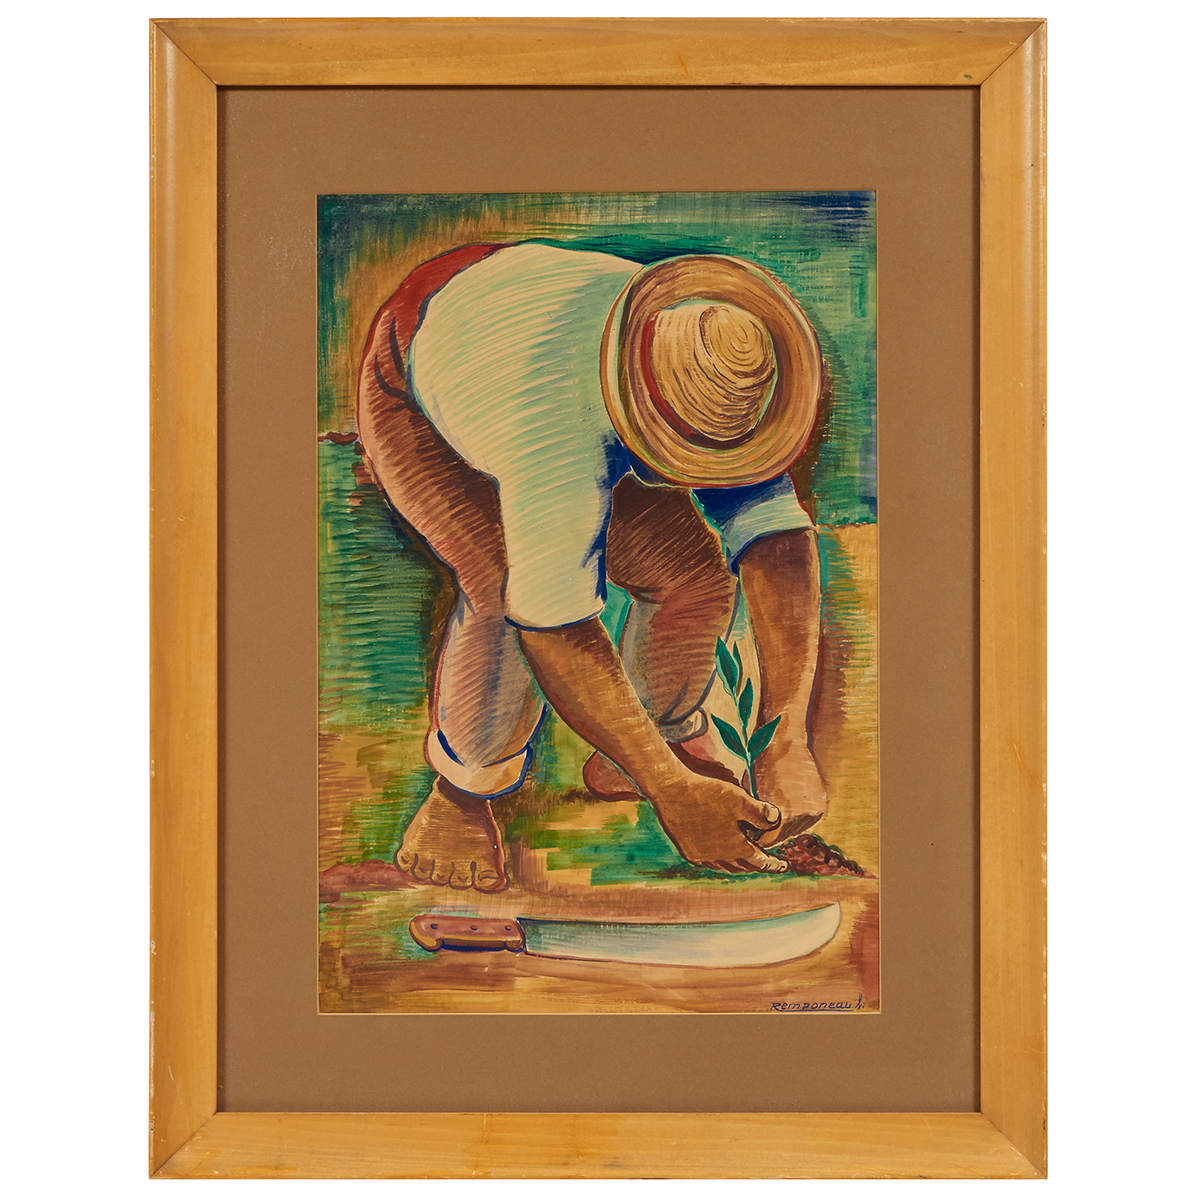 "George Remponeau, Man Planting Fruit, watercolor and gouache on paper, 19"" x 12 7/8"""